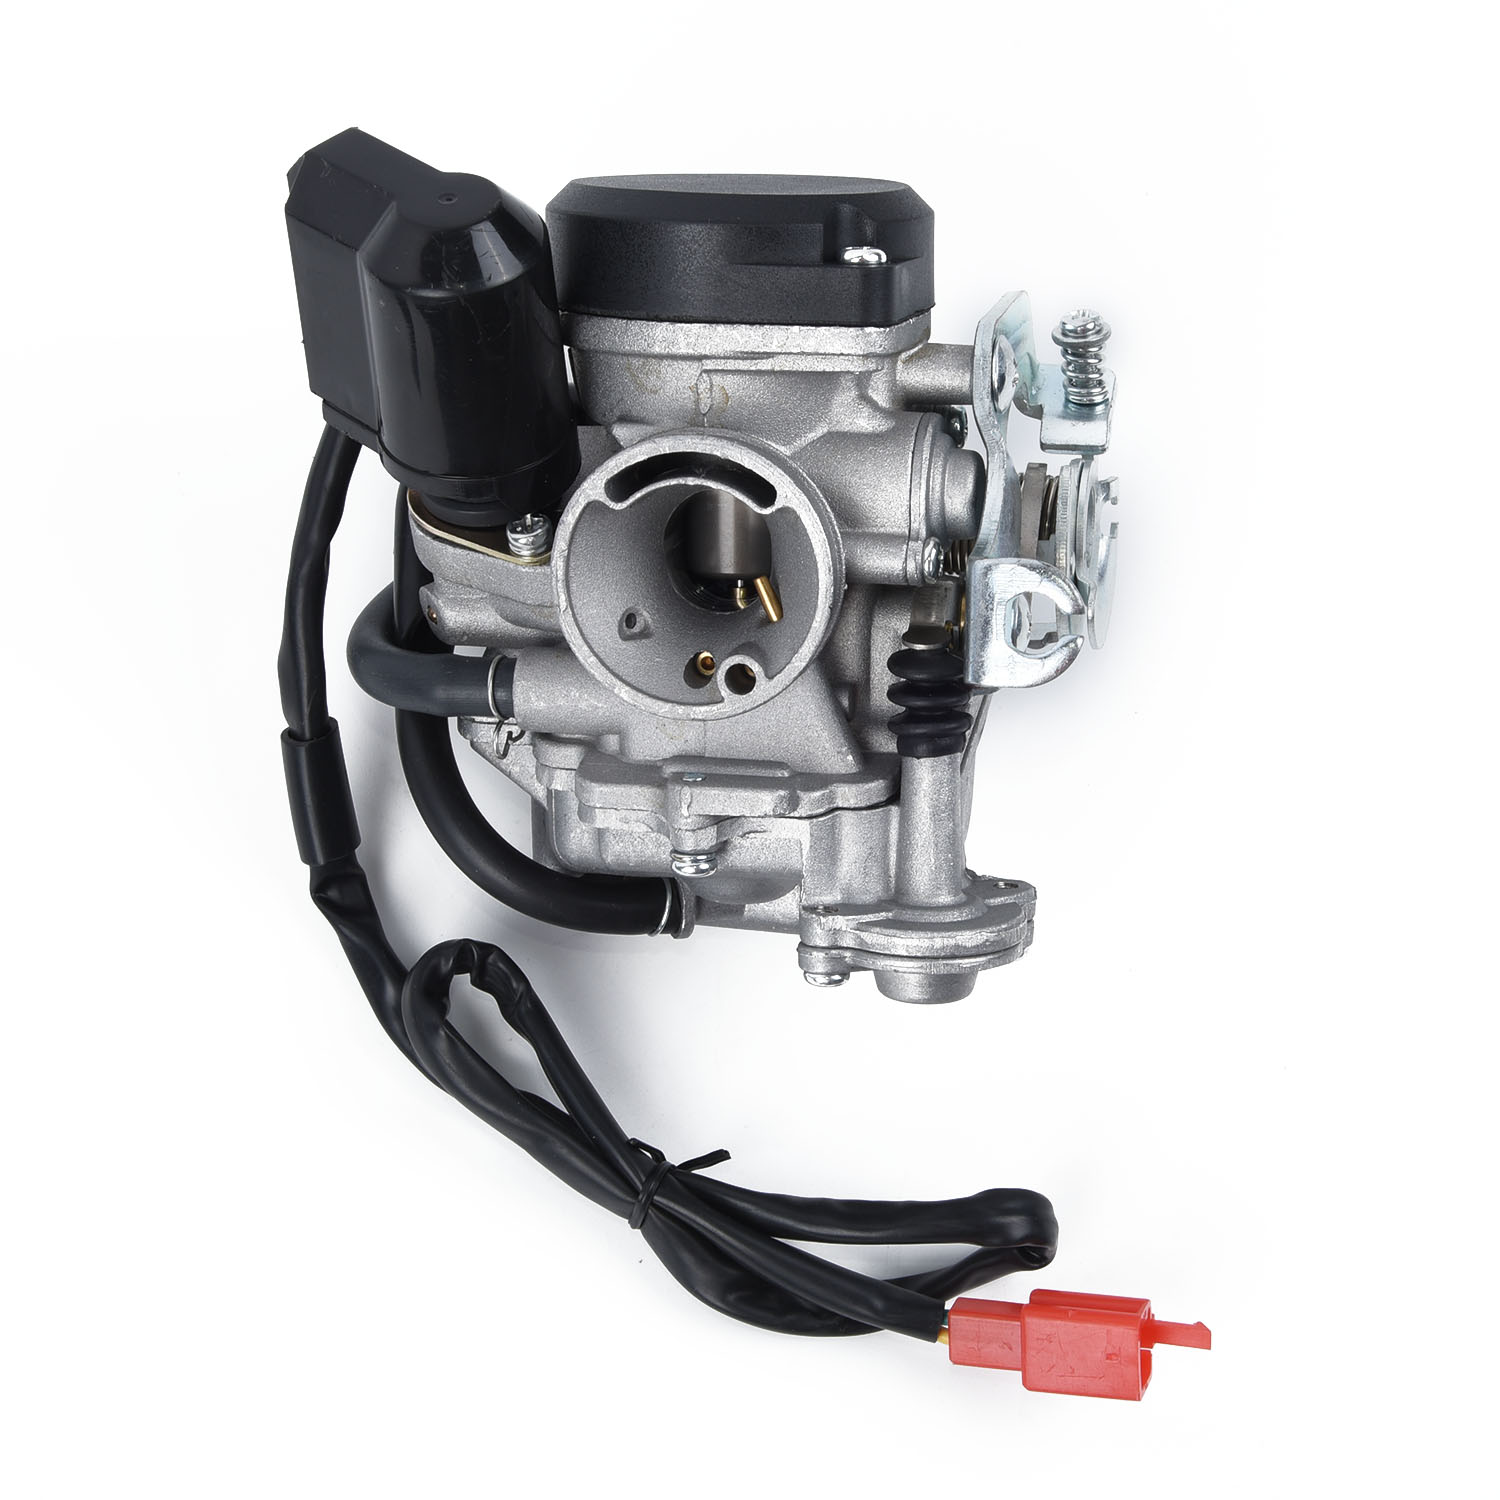 18MM CVK PD18J Carb Carburetor For GY6 50cc Scooter 139QMB Vehicle Accessories